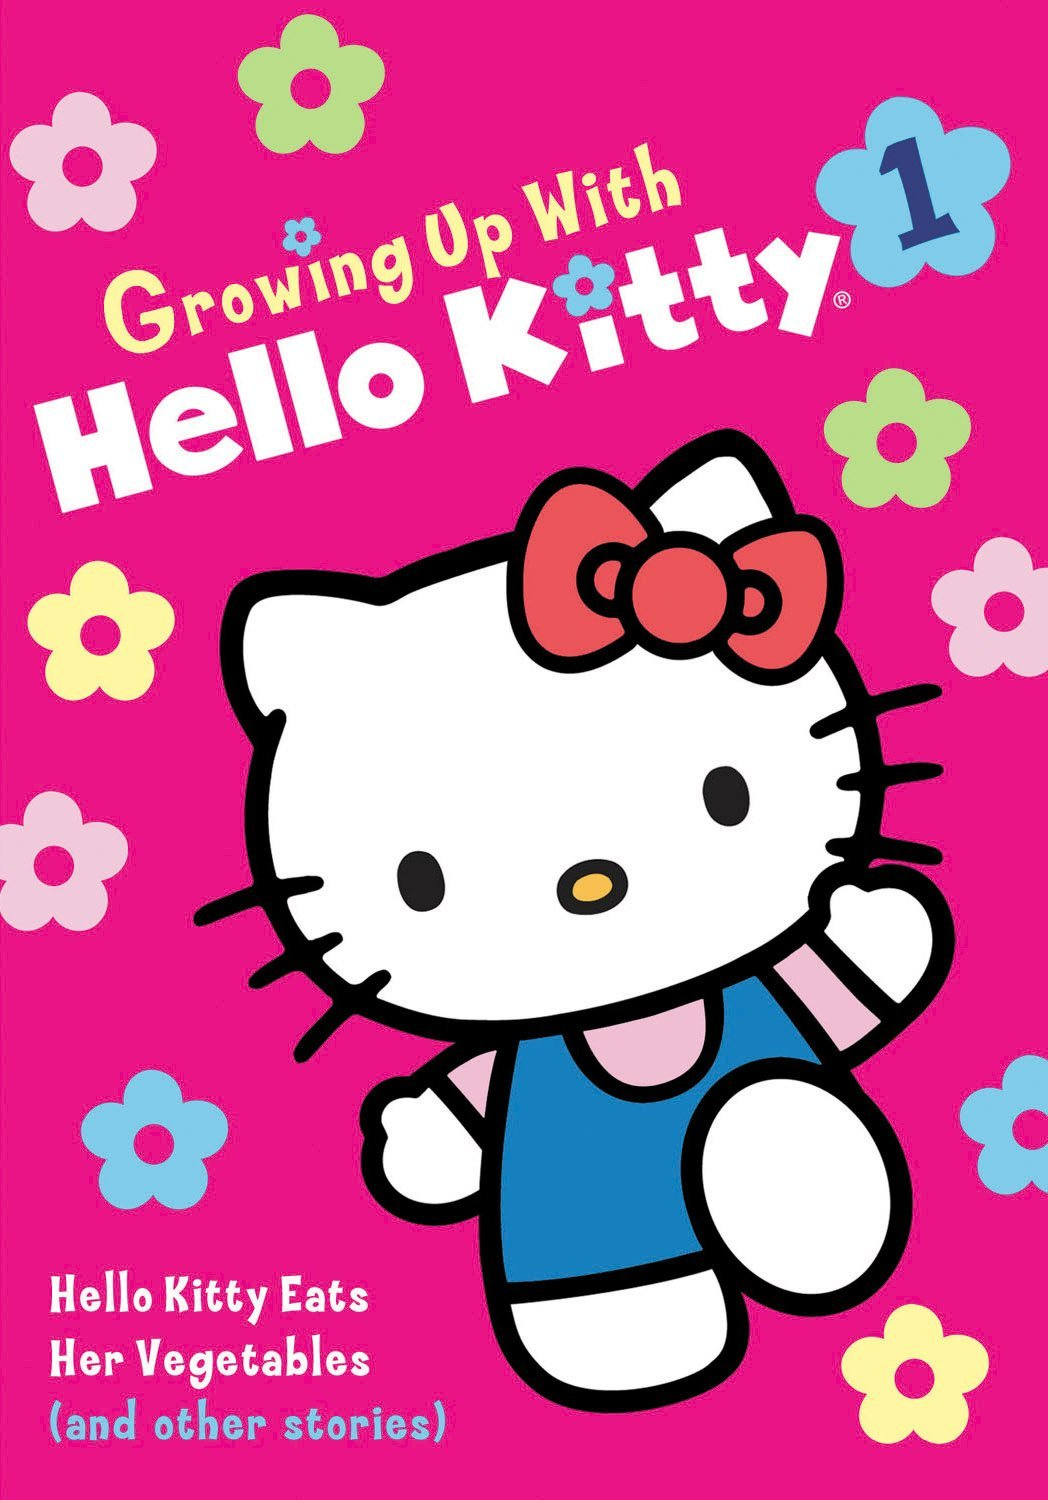 Growing up with hello kitty hello kitty wiki fandom powered by wikia - Hello kitty image ...